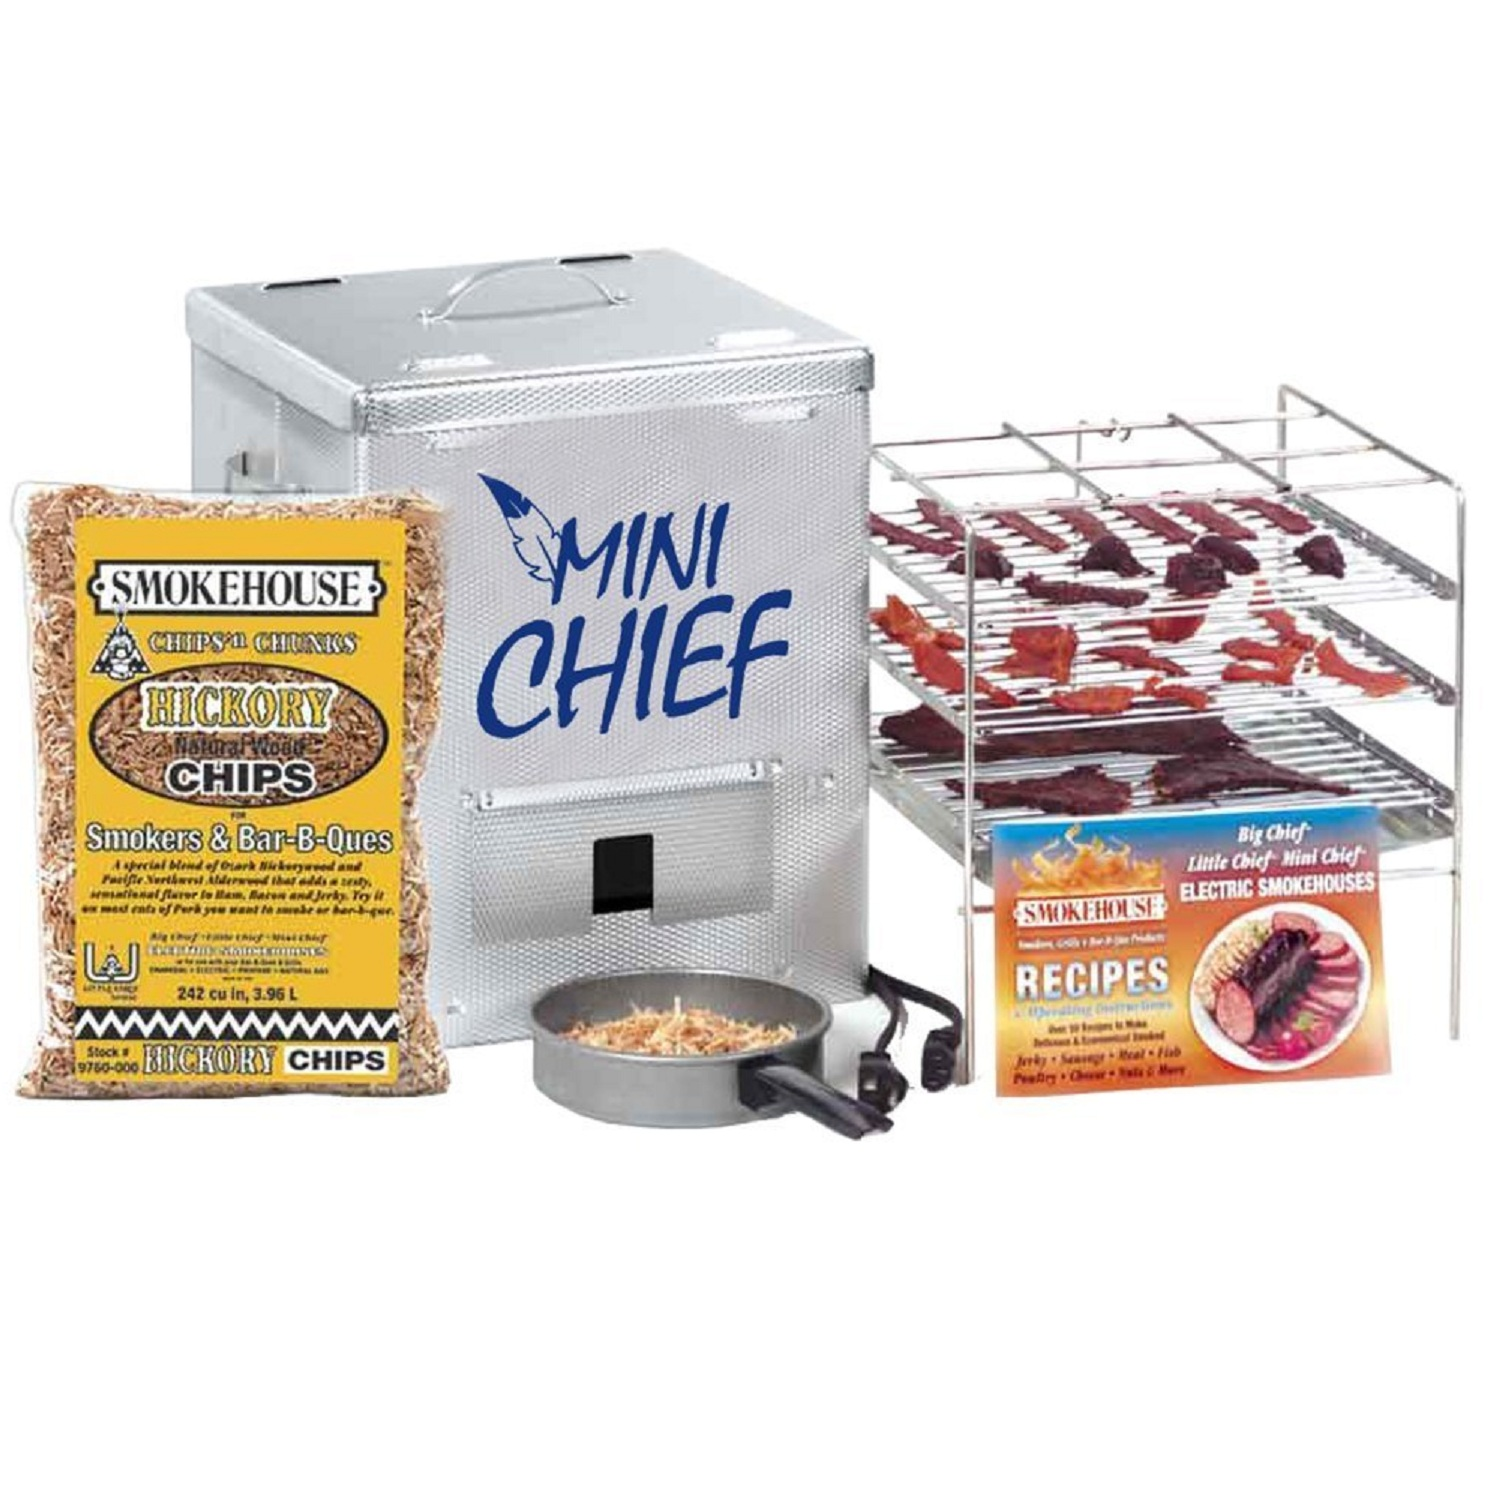 Smokehouse Mini Chief Top Load Smoker